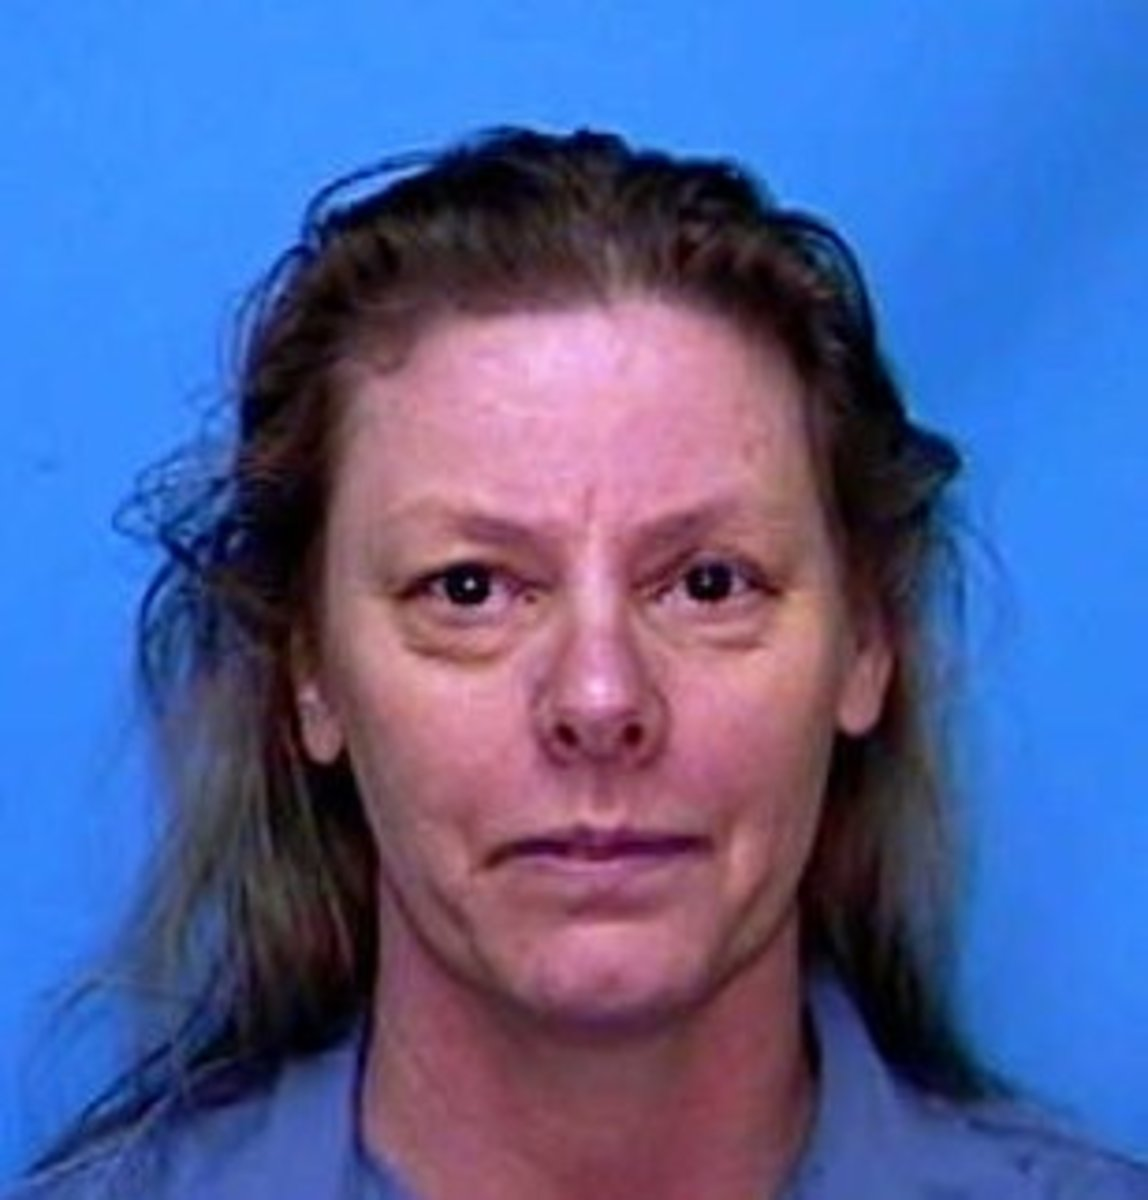 Essay Paper Writing Services Aileen Wuornos Is A Female Serial Killer Who Killed Seven Men In Florida  Between  And Argument Essay Thesis also Proposal Essay Topics List The Pros And Cons Of The Death Penalty  Soapboxie Persuasive Essay Topics High School